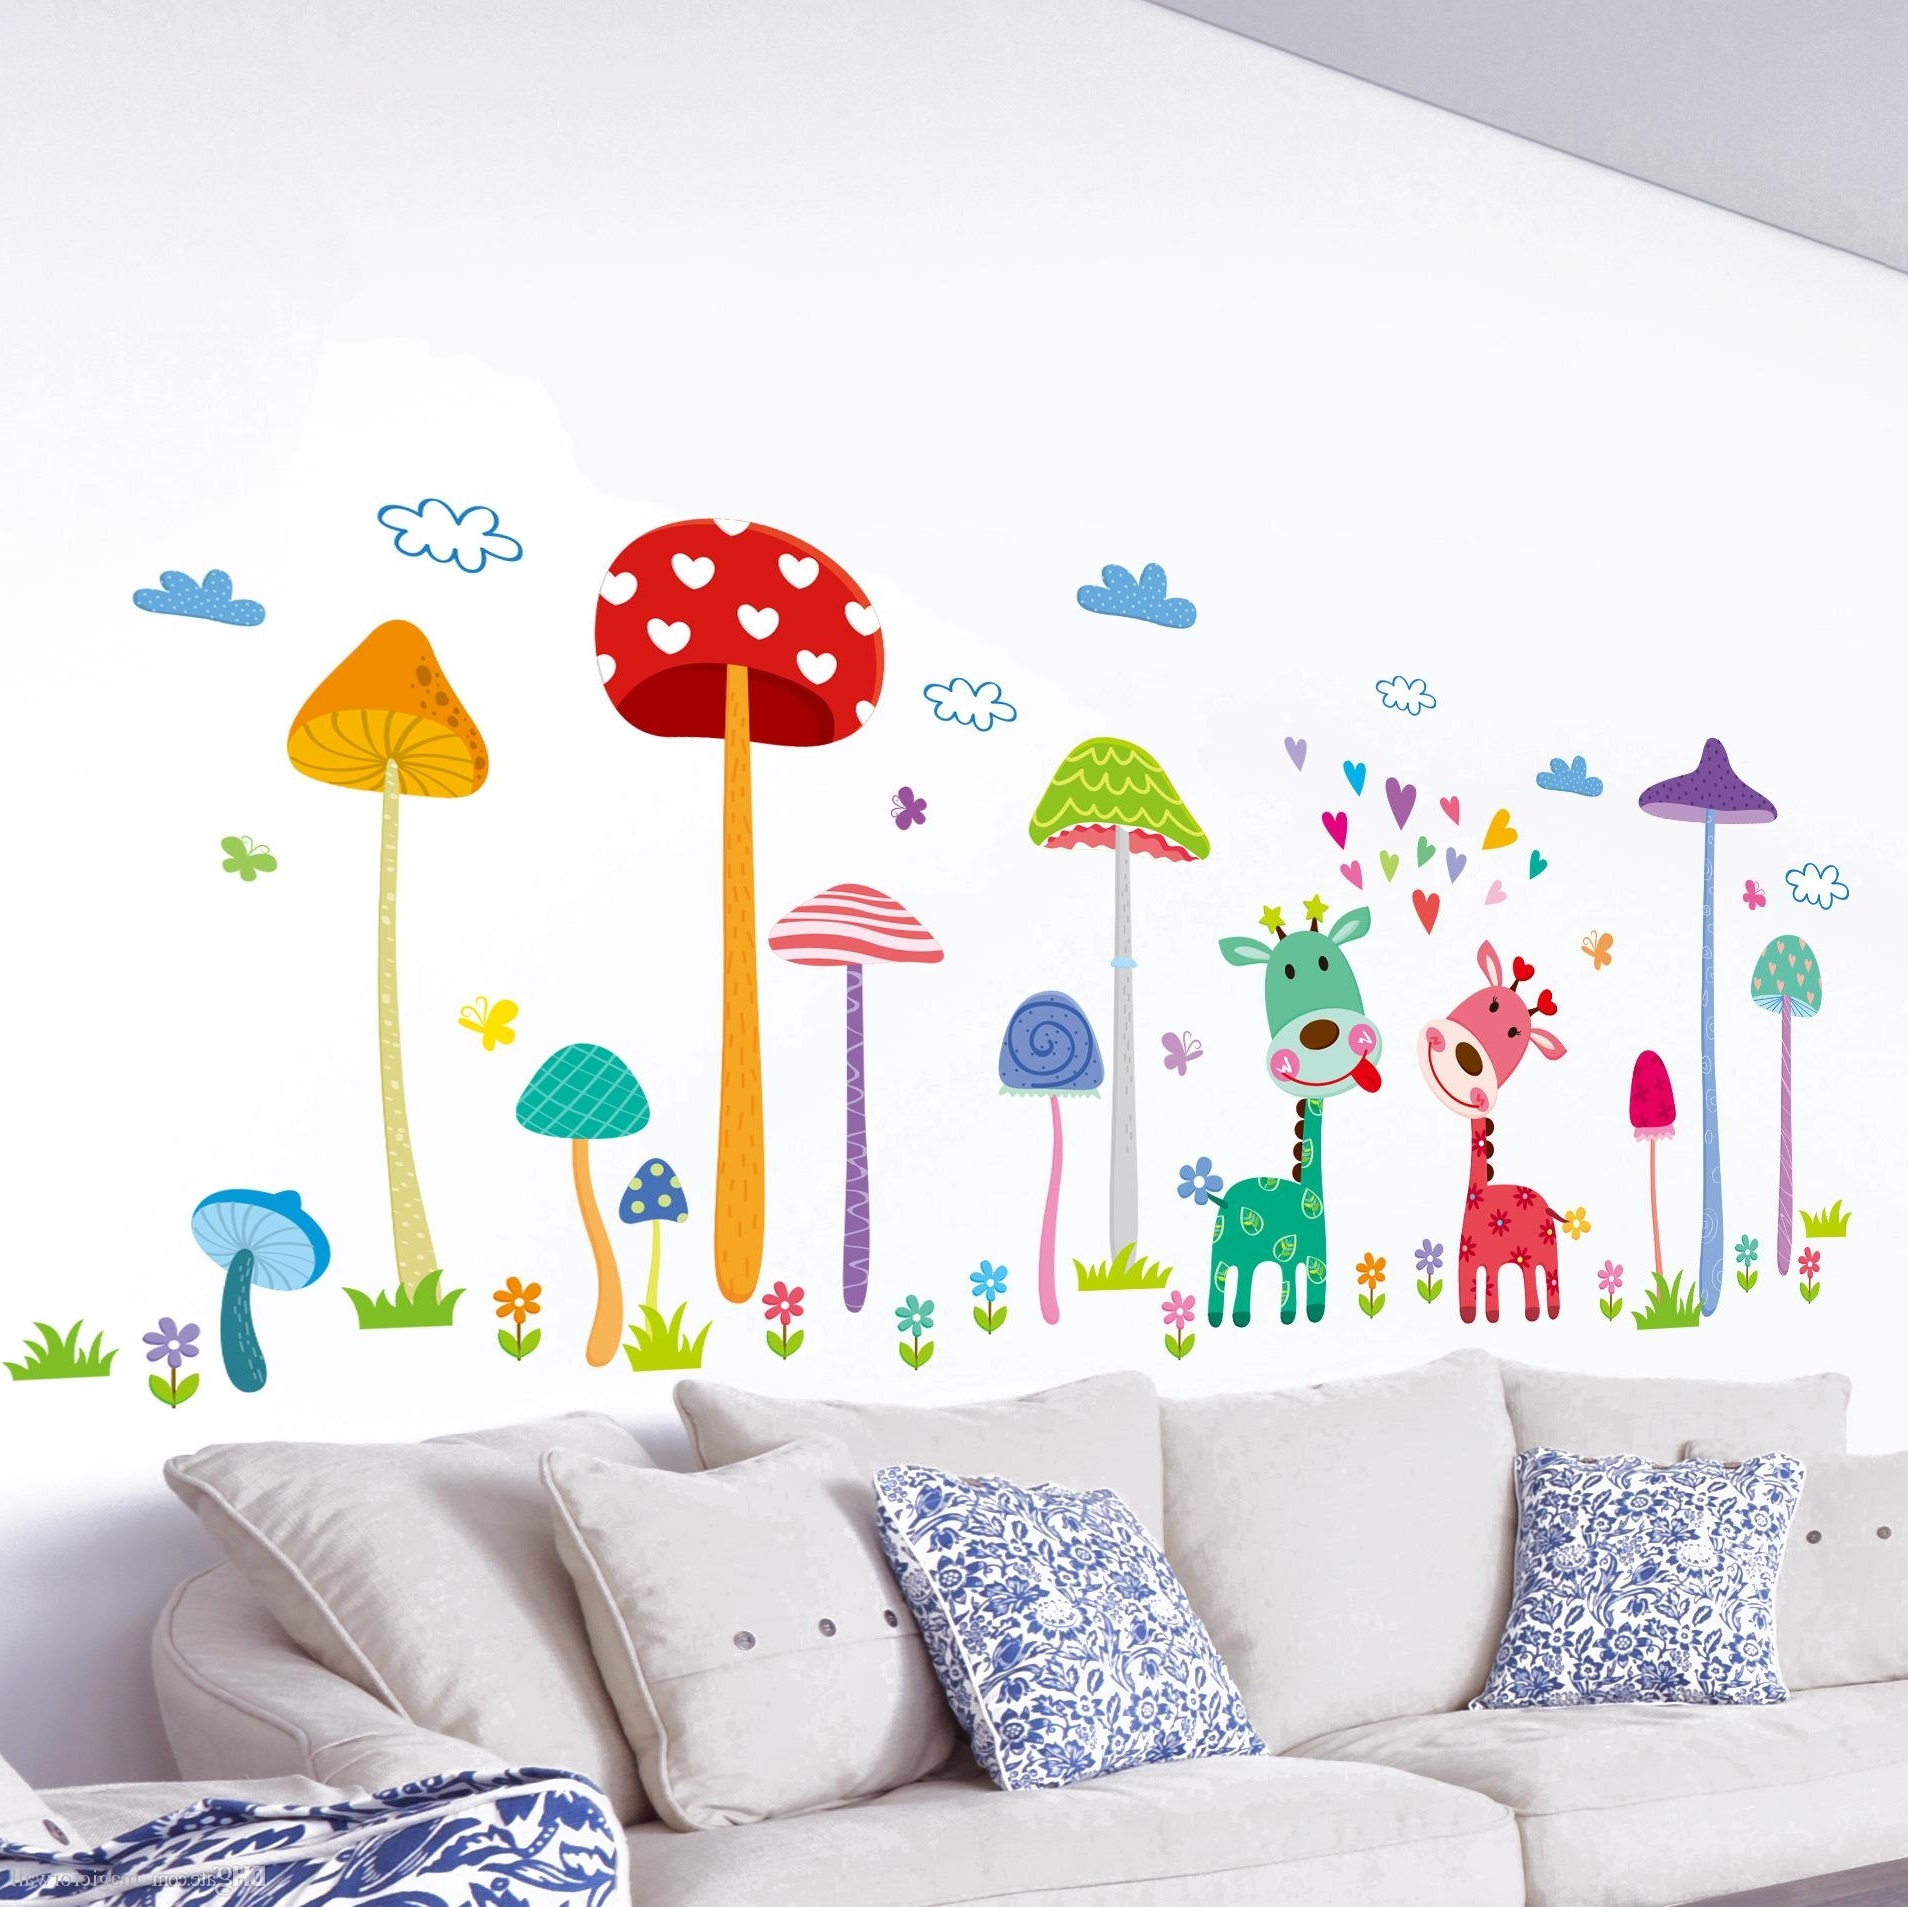 Kids Wall Art Pertaining To Most Up To Date Forest Mushroom Deer Animals Home Wall Art Mural Decor Kids Babies (Gallery 1 of 15)